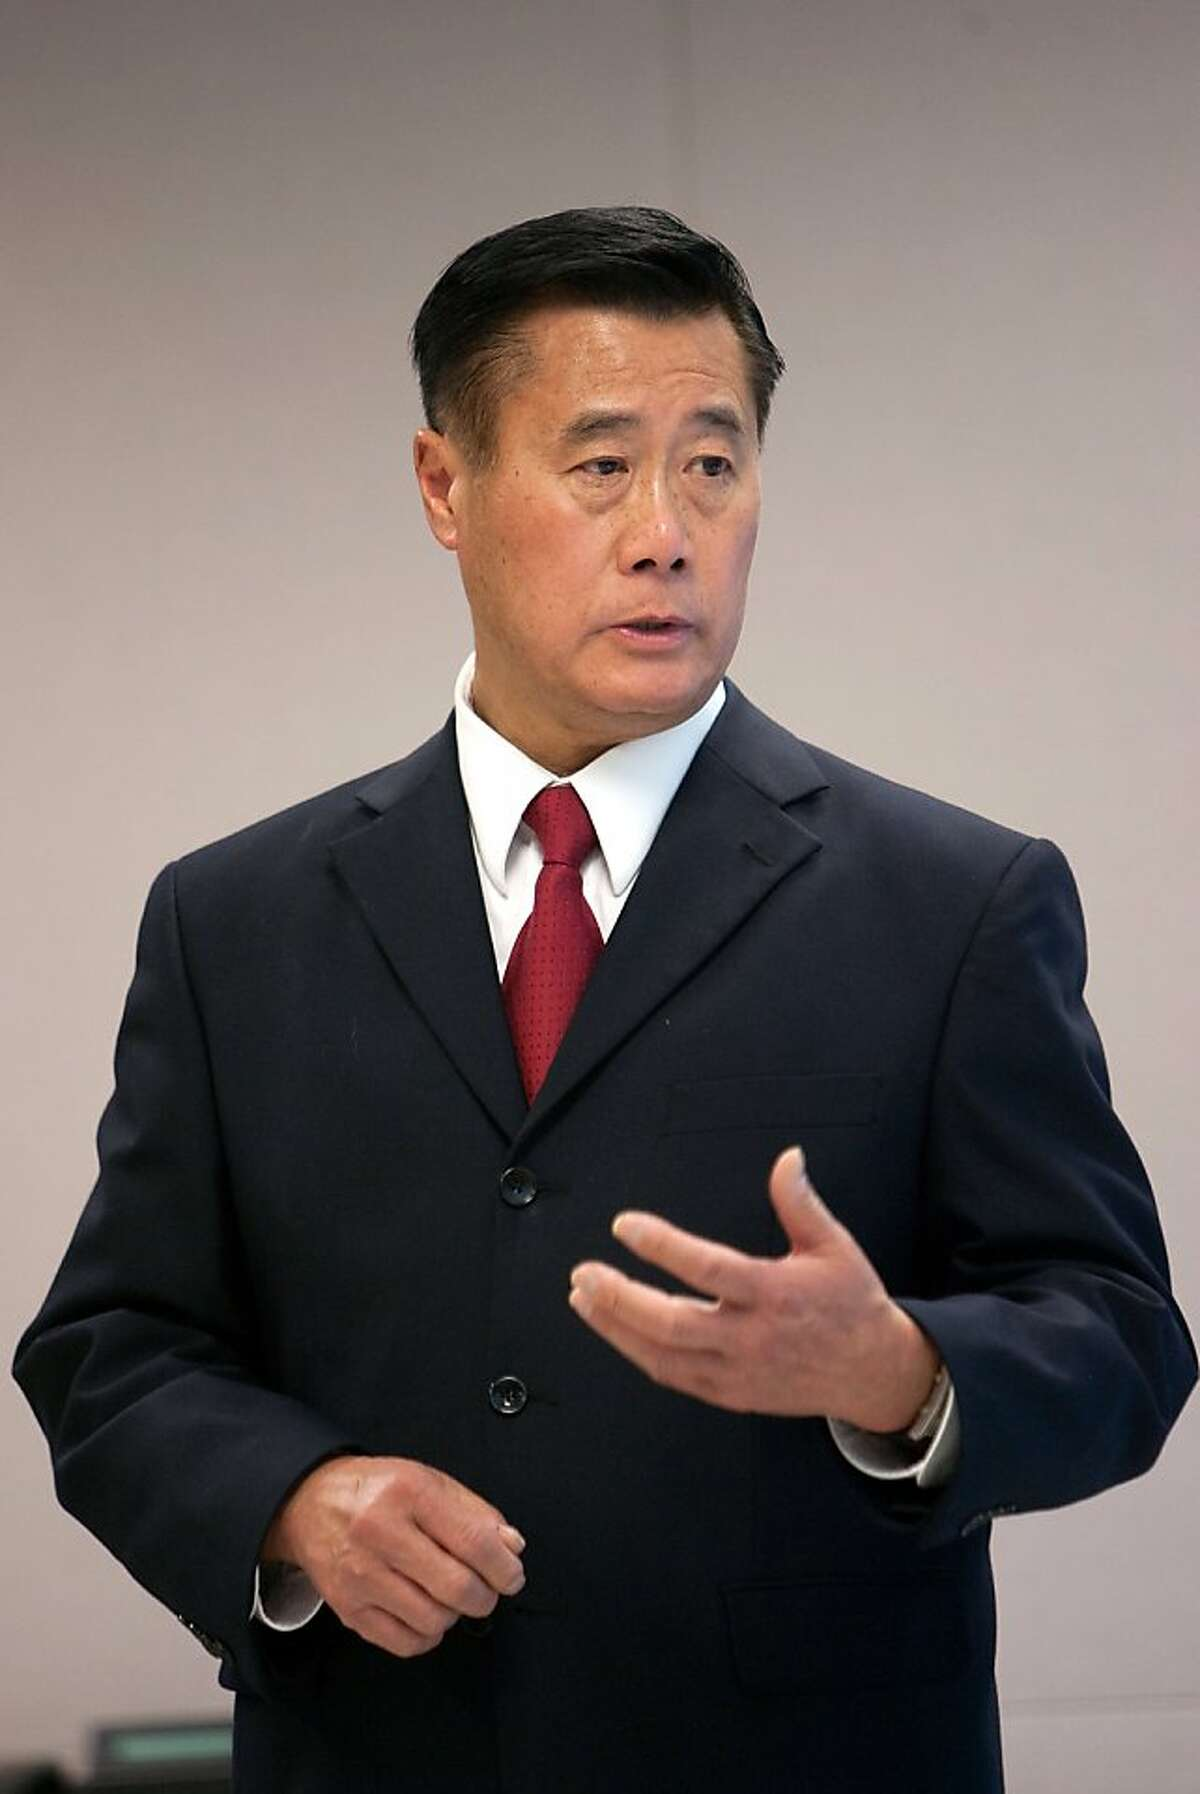 One of S.F's mayoral candidates 2011: Leland Yee -- Veteran state legislator, former supervisor and school board member who's scooped up labor endorsements.